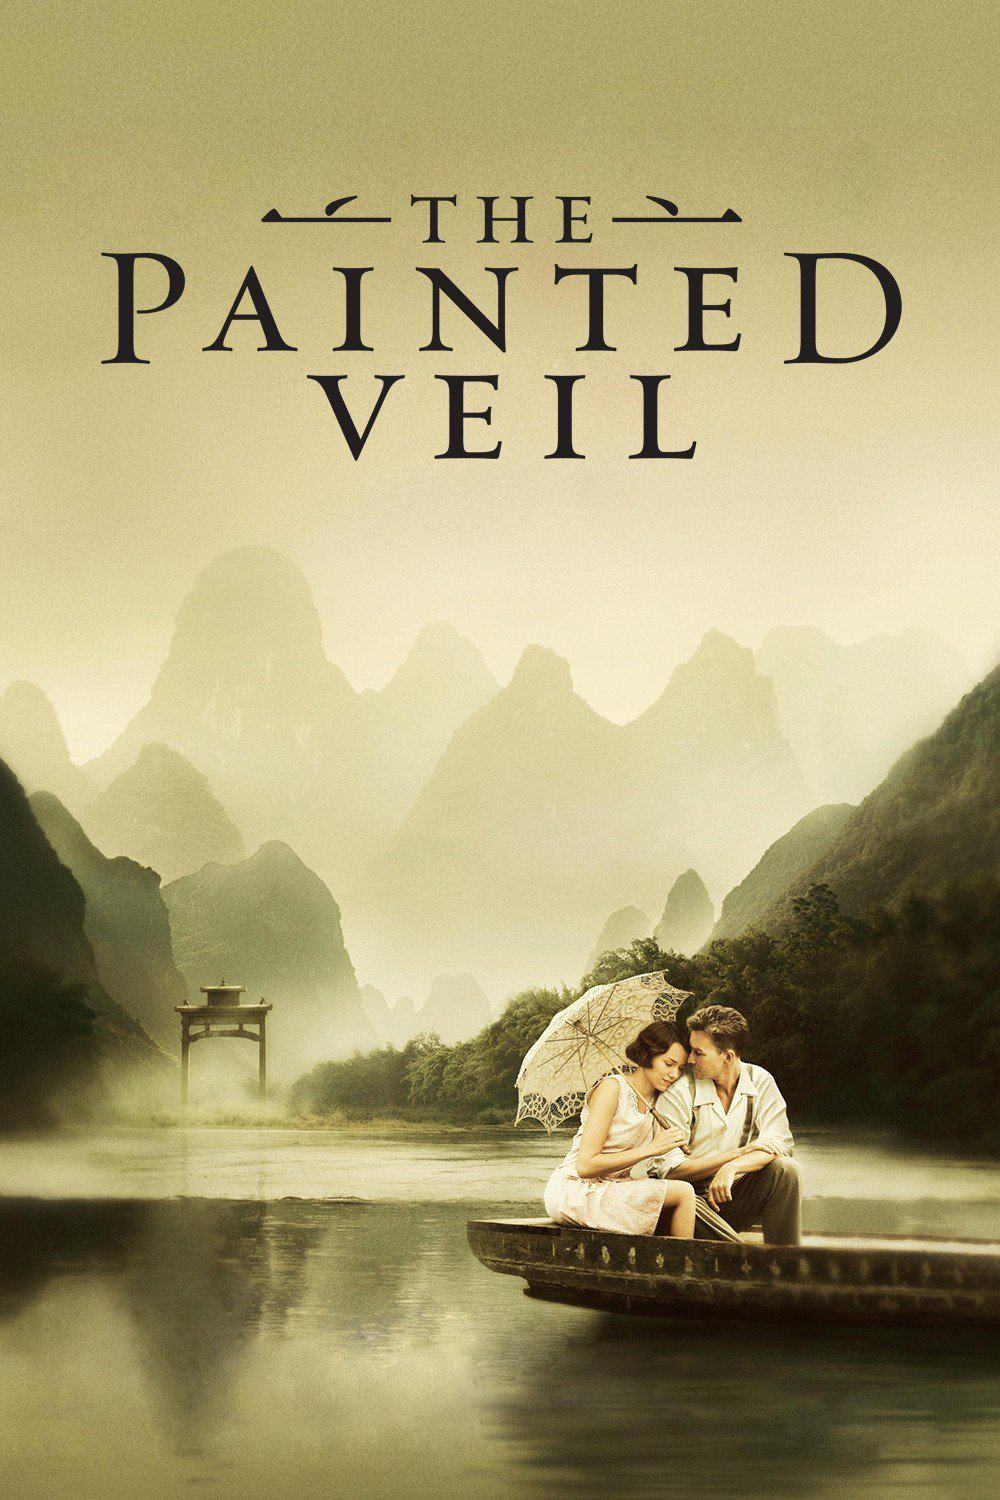 The Painted Veil, 2006